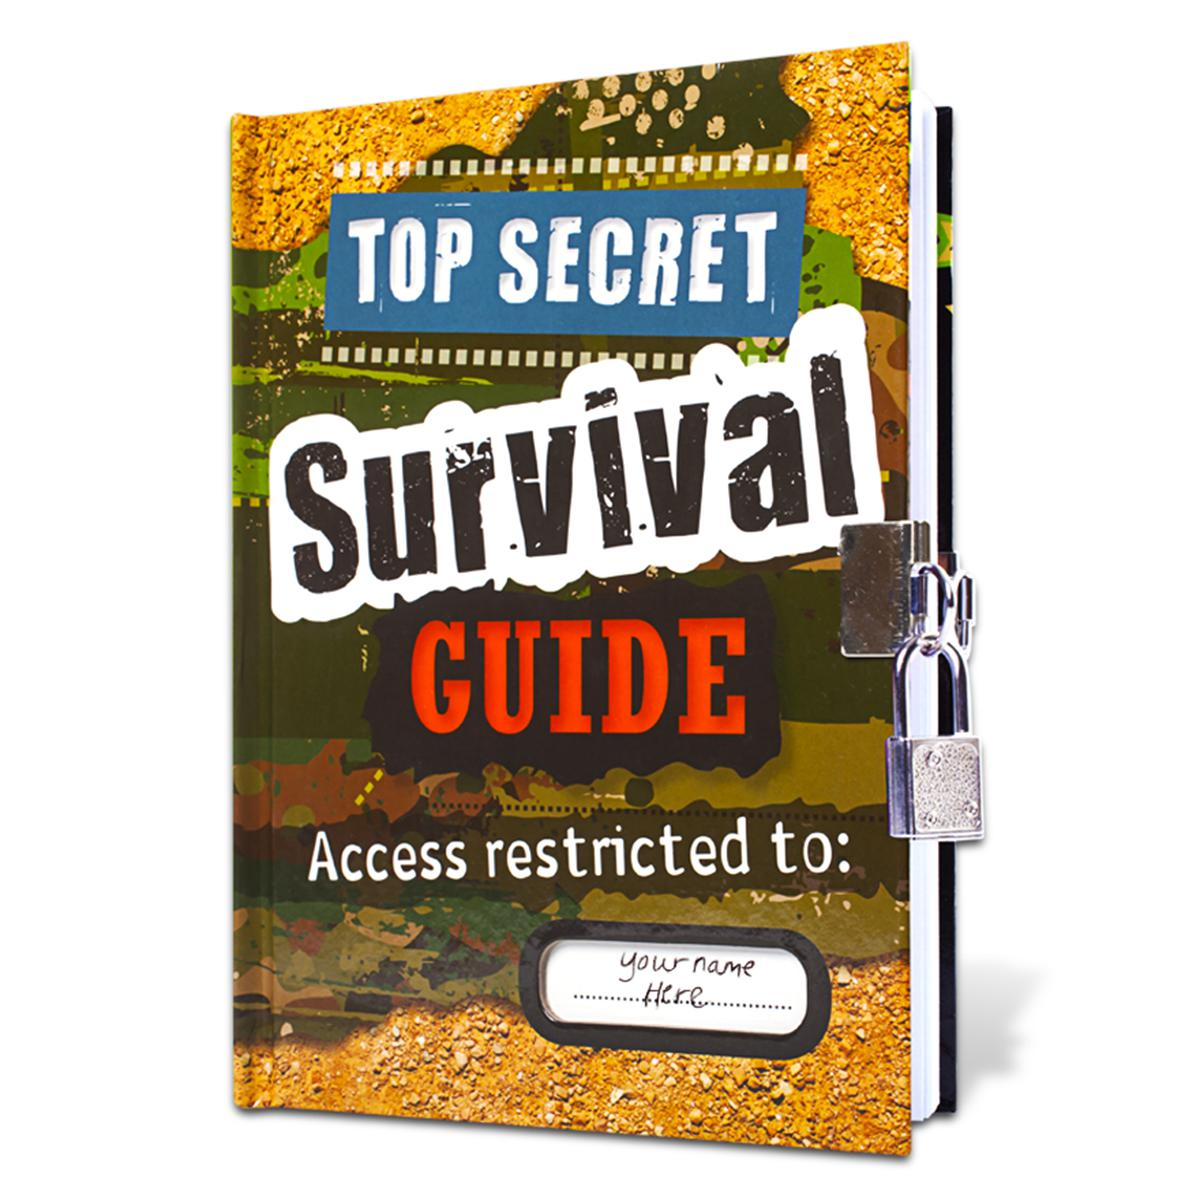 Top Secret Survival Guide